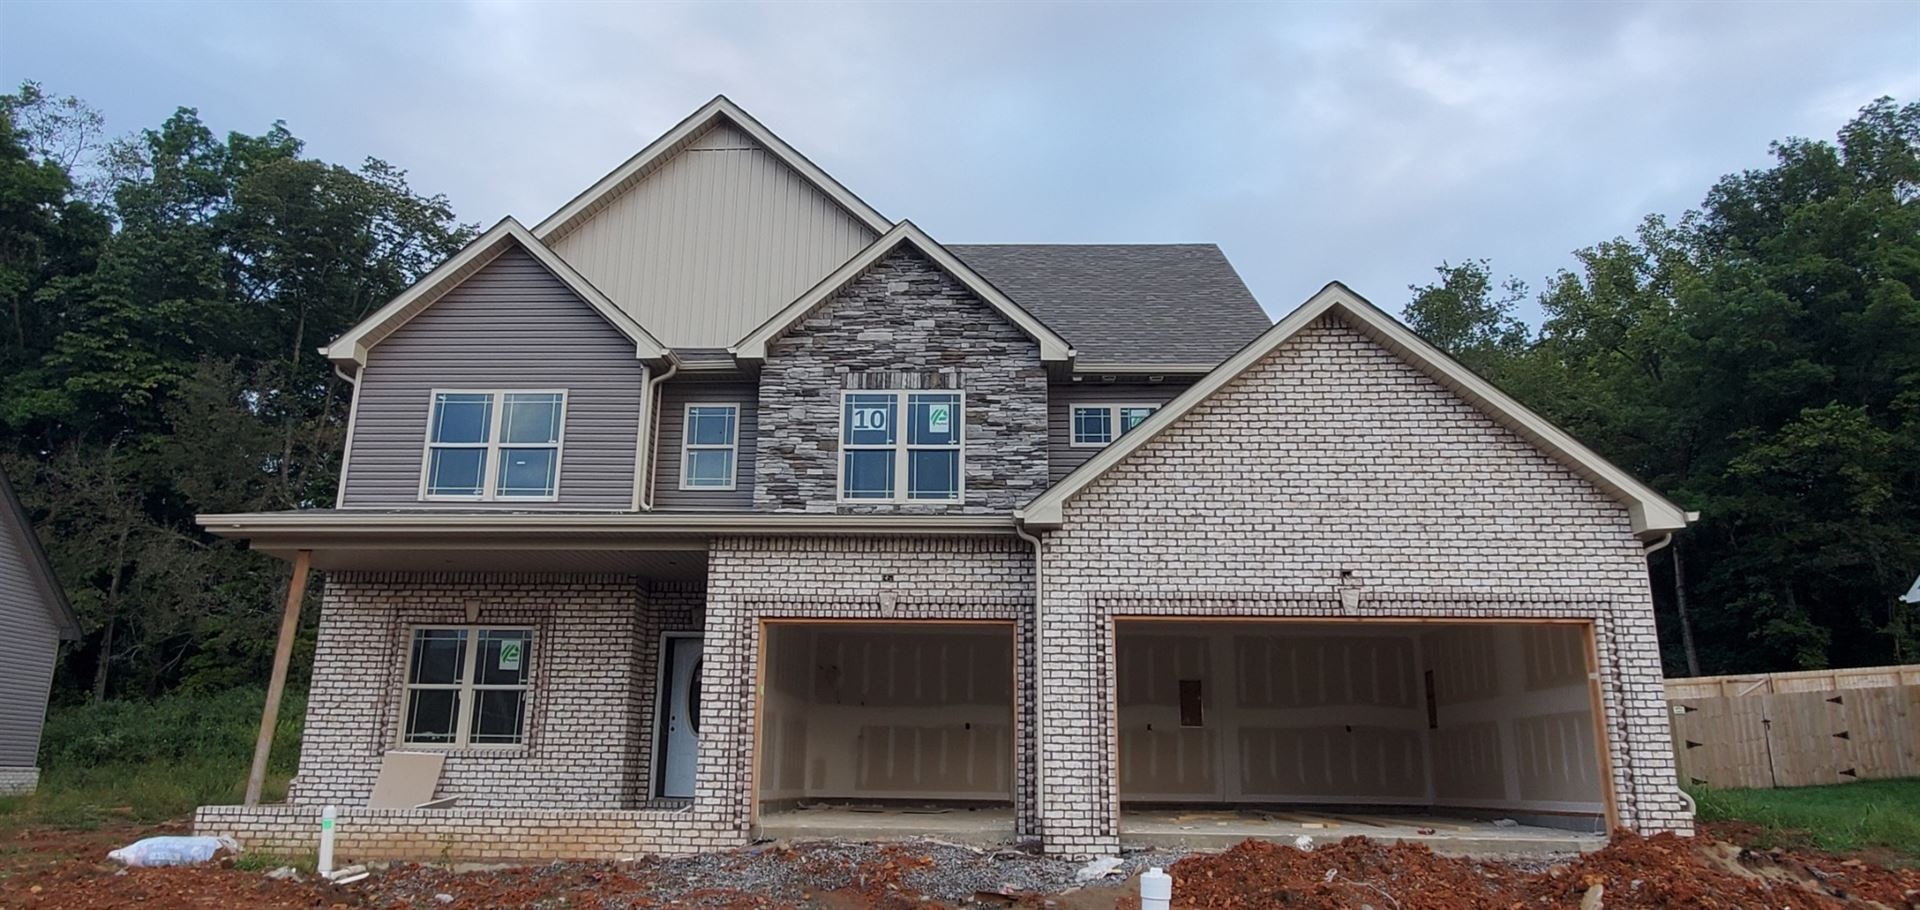 Photo of 10 River Chase, Clarksville, TN 37043 (MLS # 2292260)